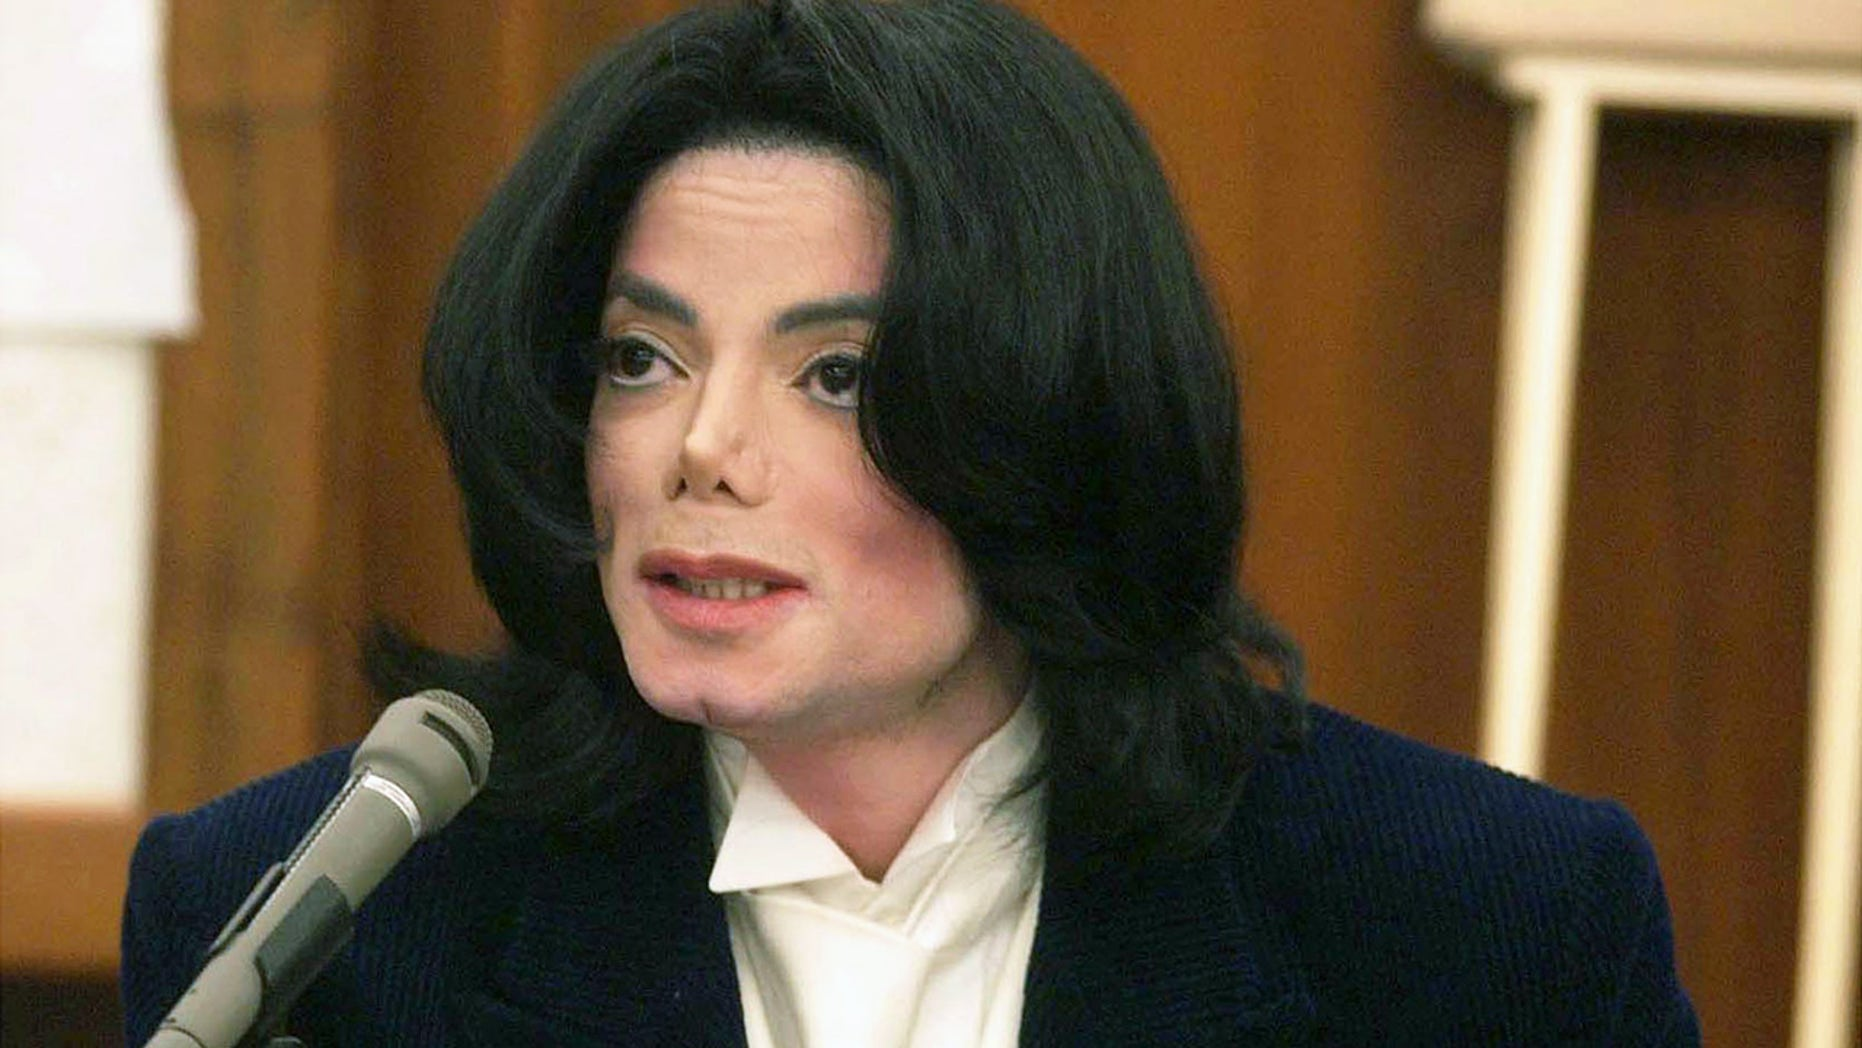 Westlake Legal Group michael-jackson-cropped This Day in History: June 25 fox-news/us/this-day-in-history fox news fnc/us fnc article a151e36a-6b6d-54fa-b659-13b558210898